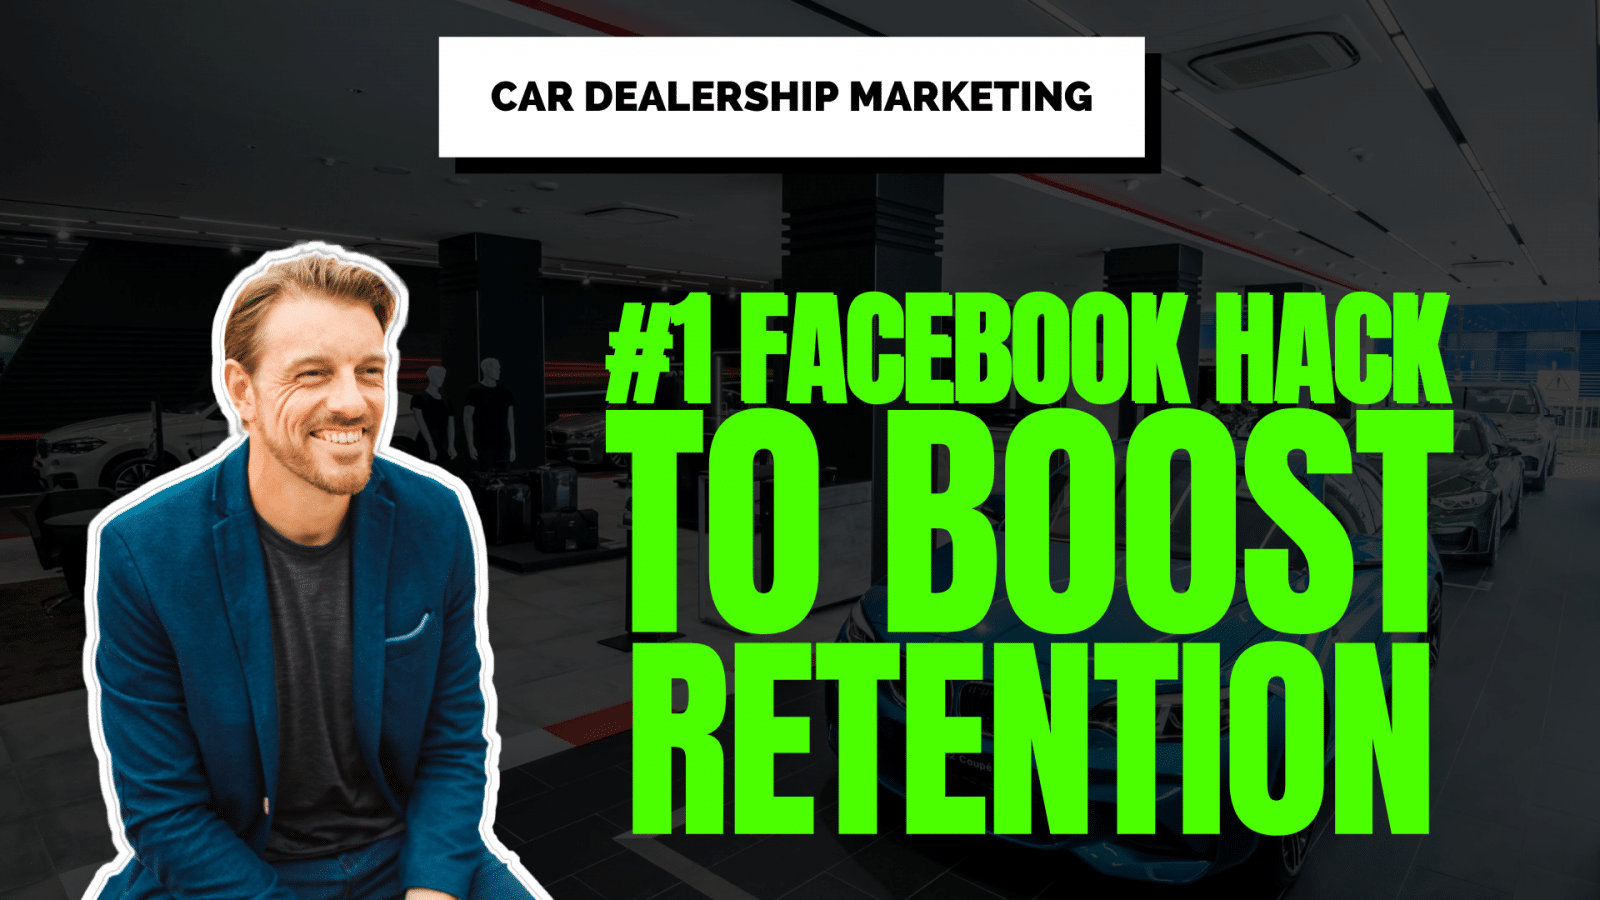 How to boost retention sales in a car dealership using facebook ads & audiences